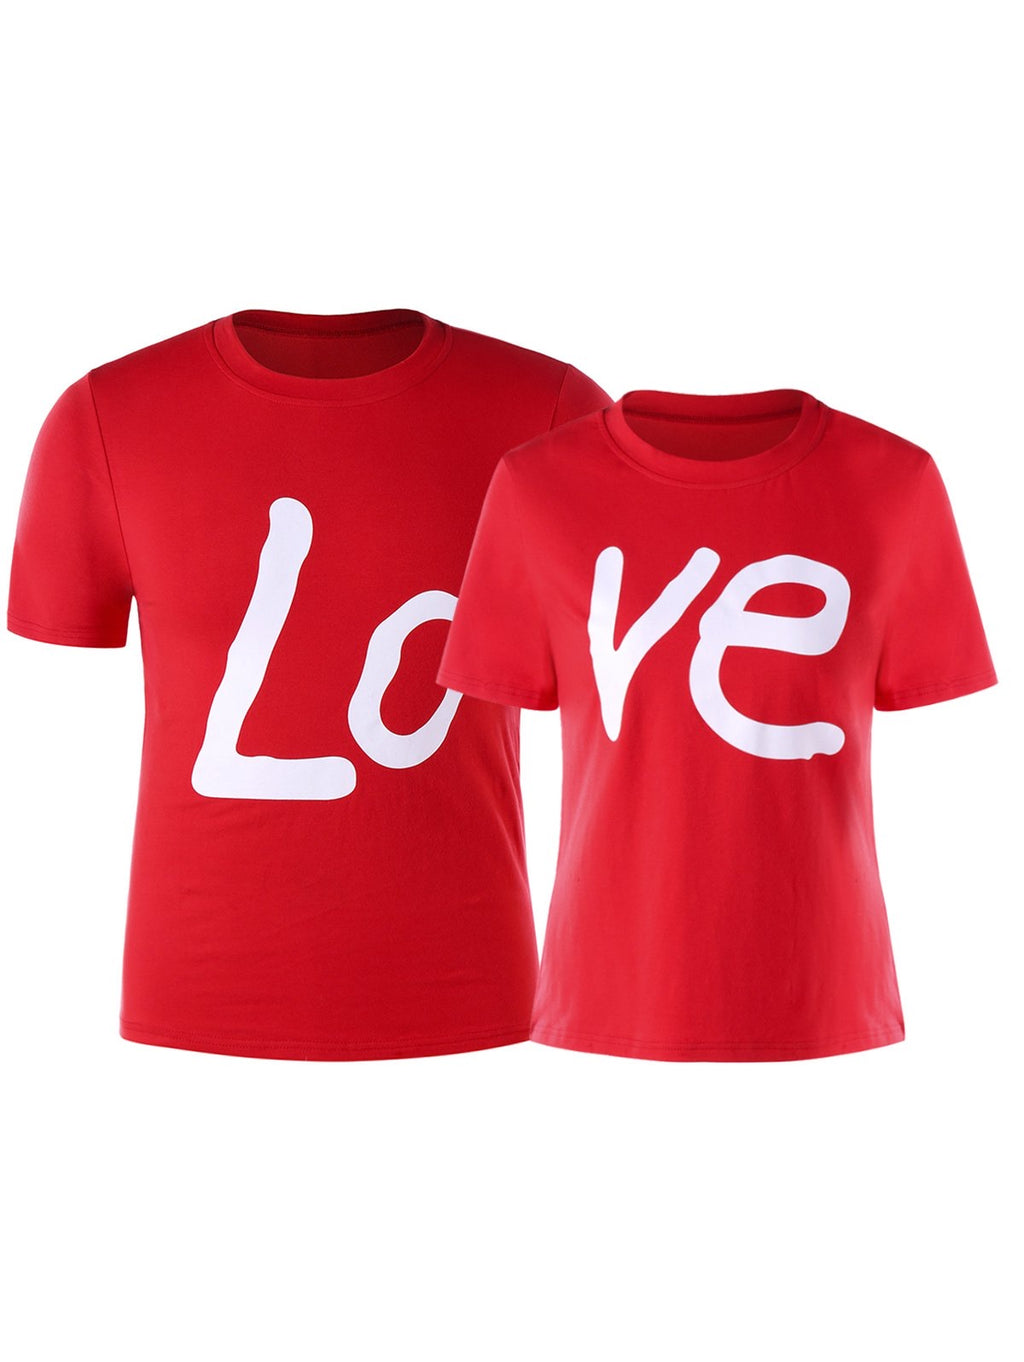 Matching LOVE shirts